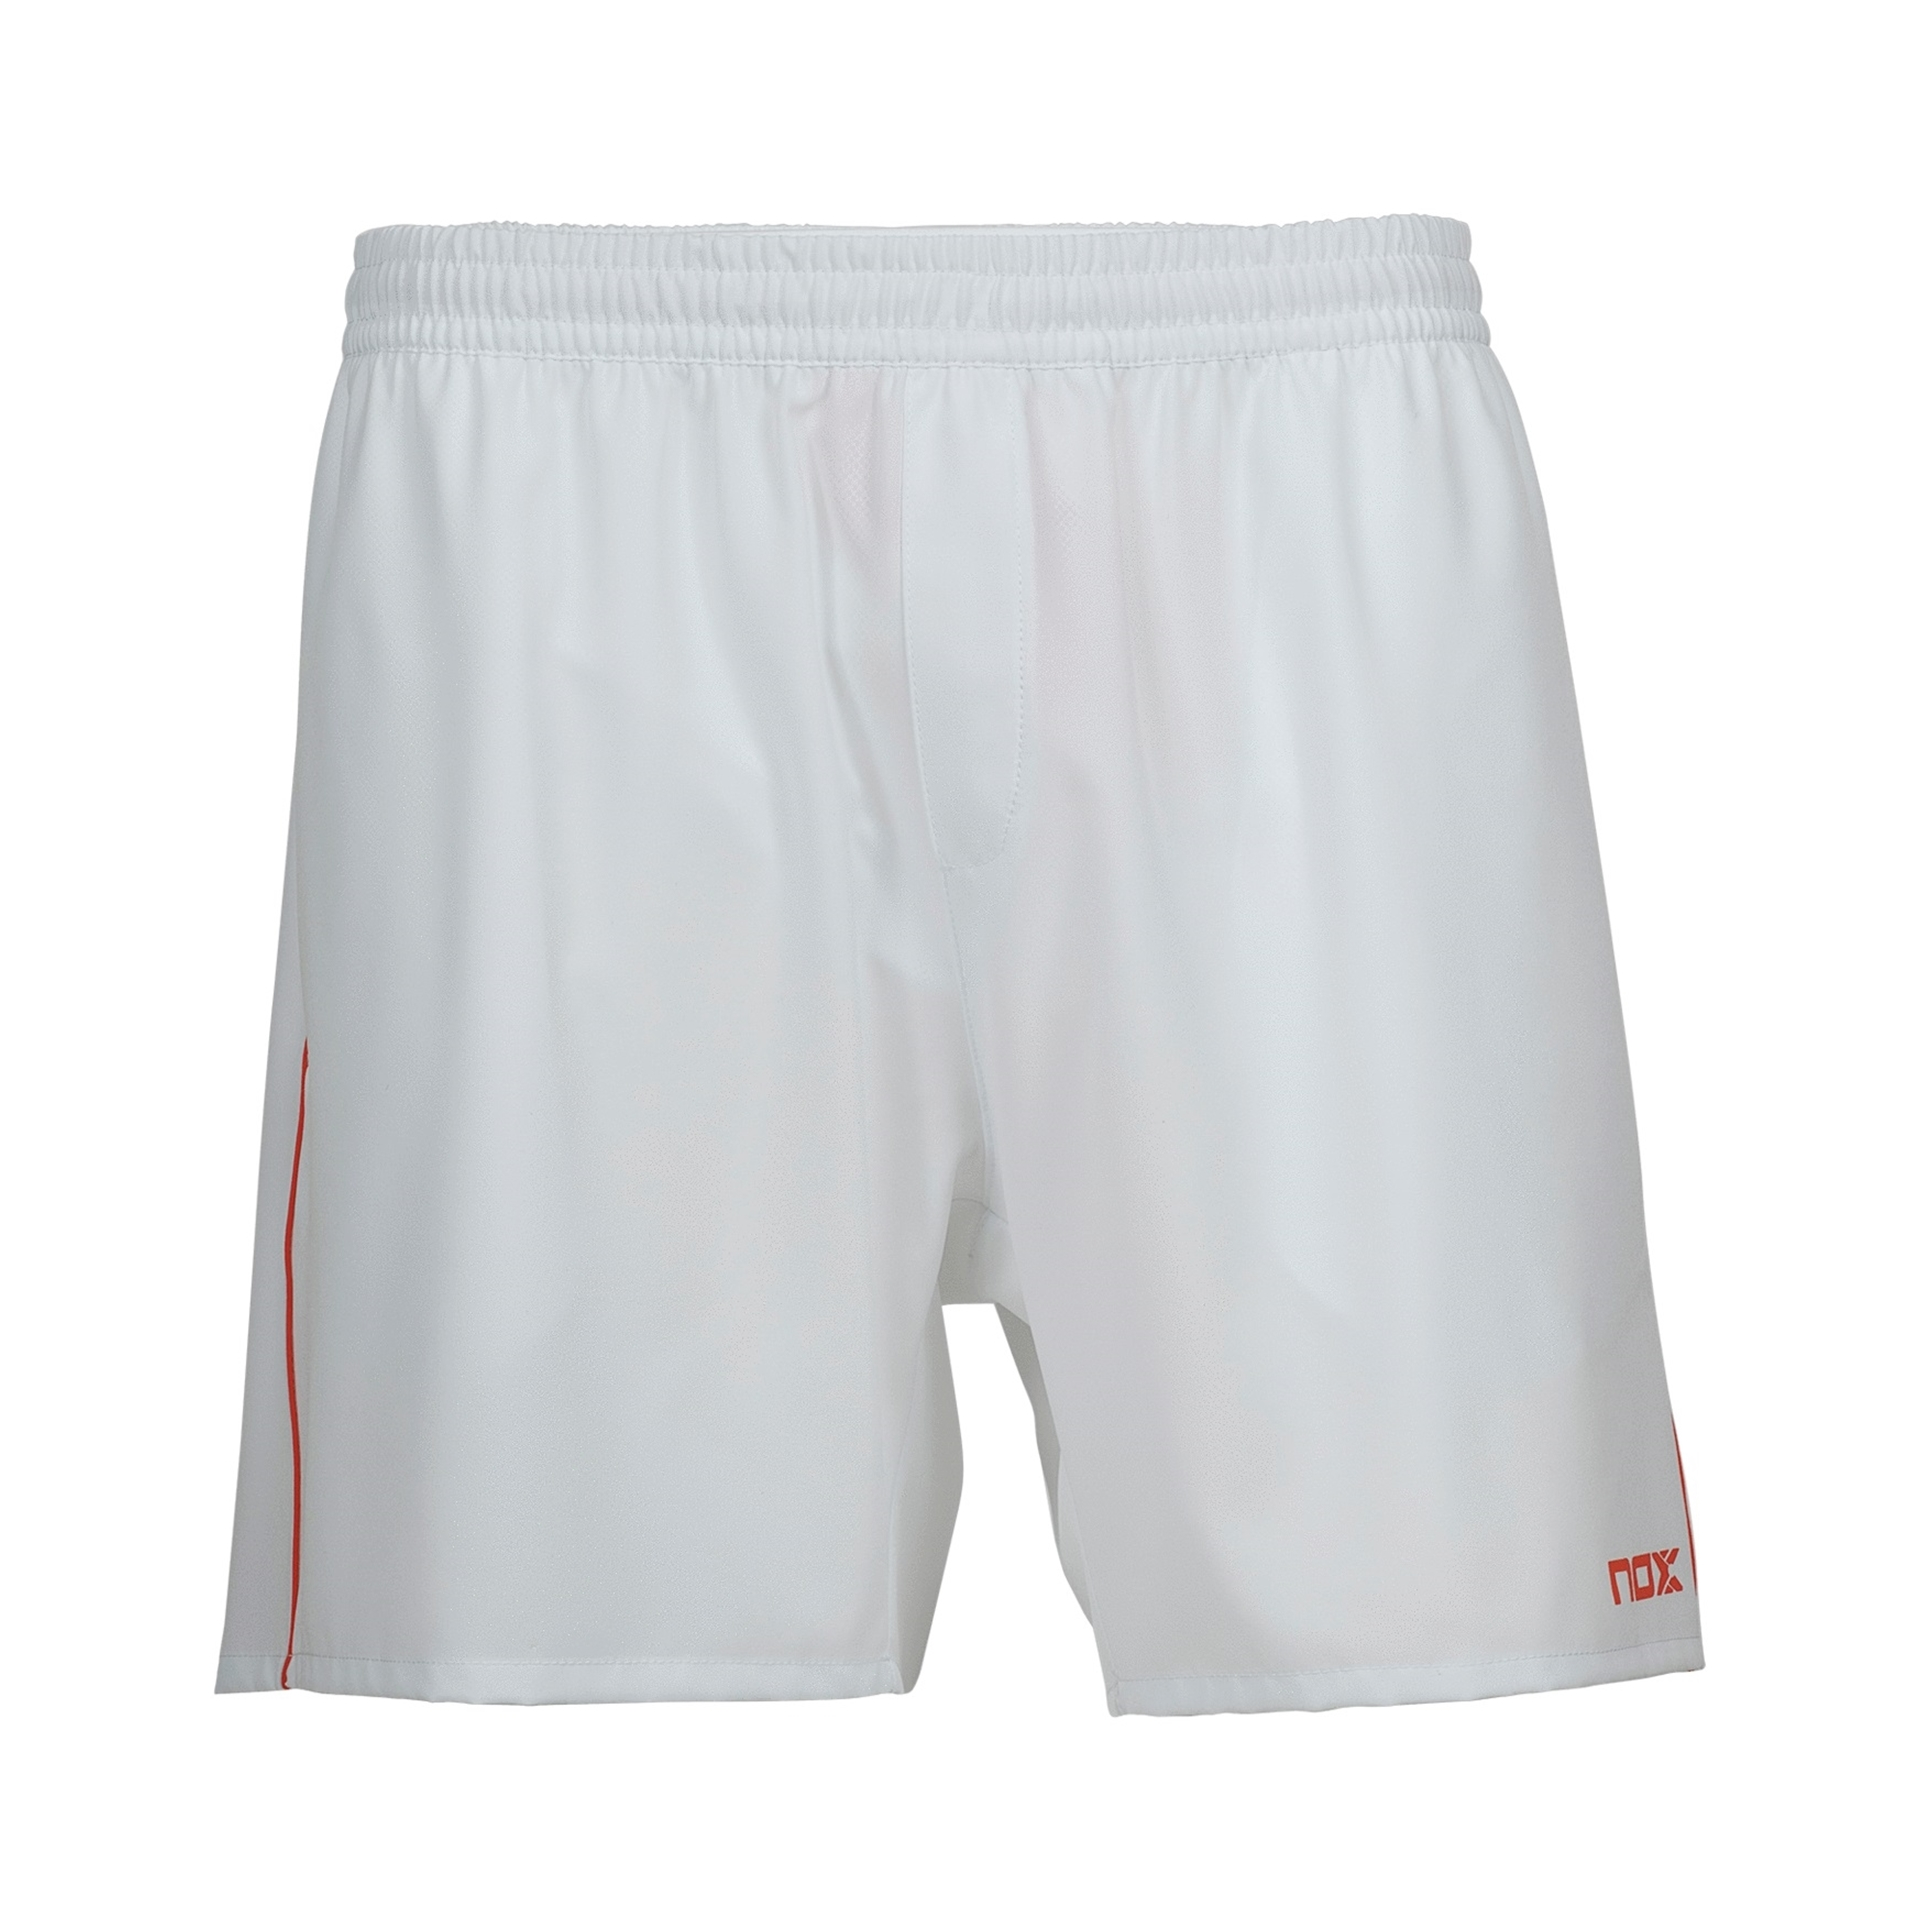 Nox Shorts Team White/Red S